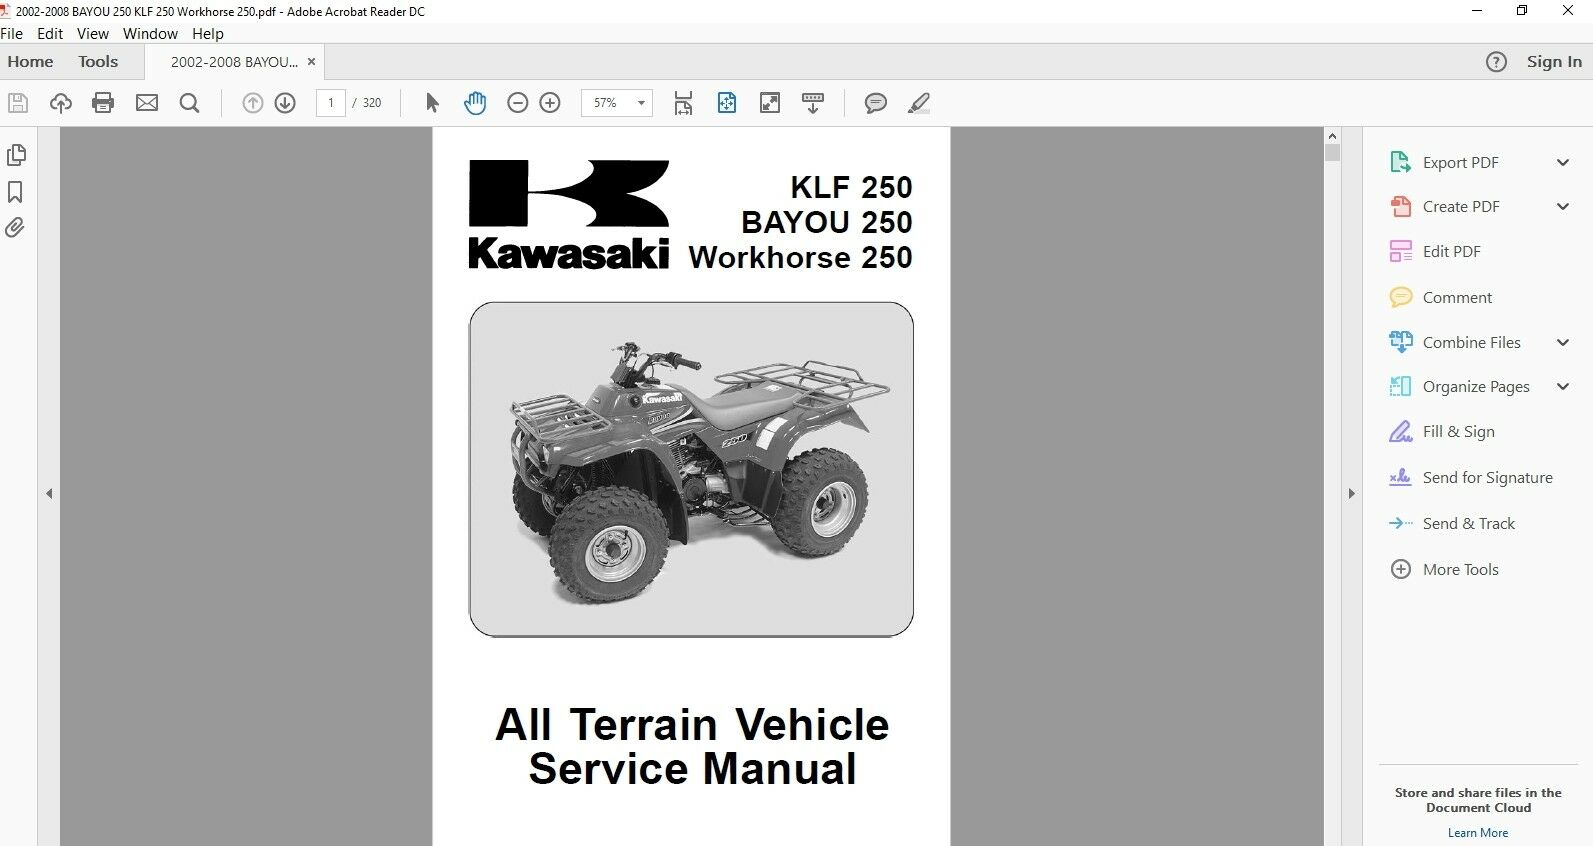 Download Service Manual 2003 2009 Kawasaki Bayou 250 Klf 250 1 of 4FREE  Shipping ...